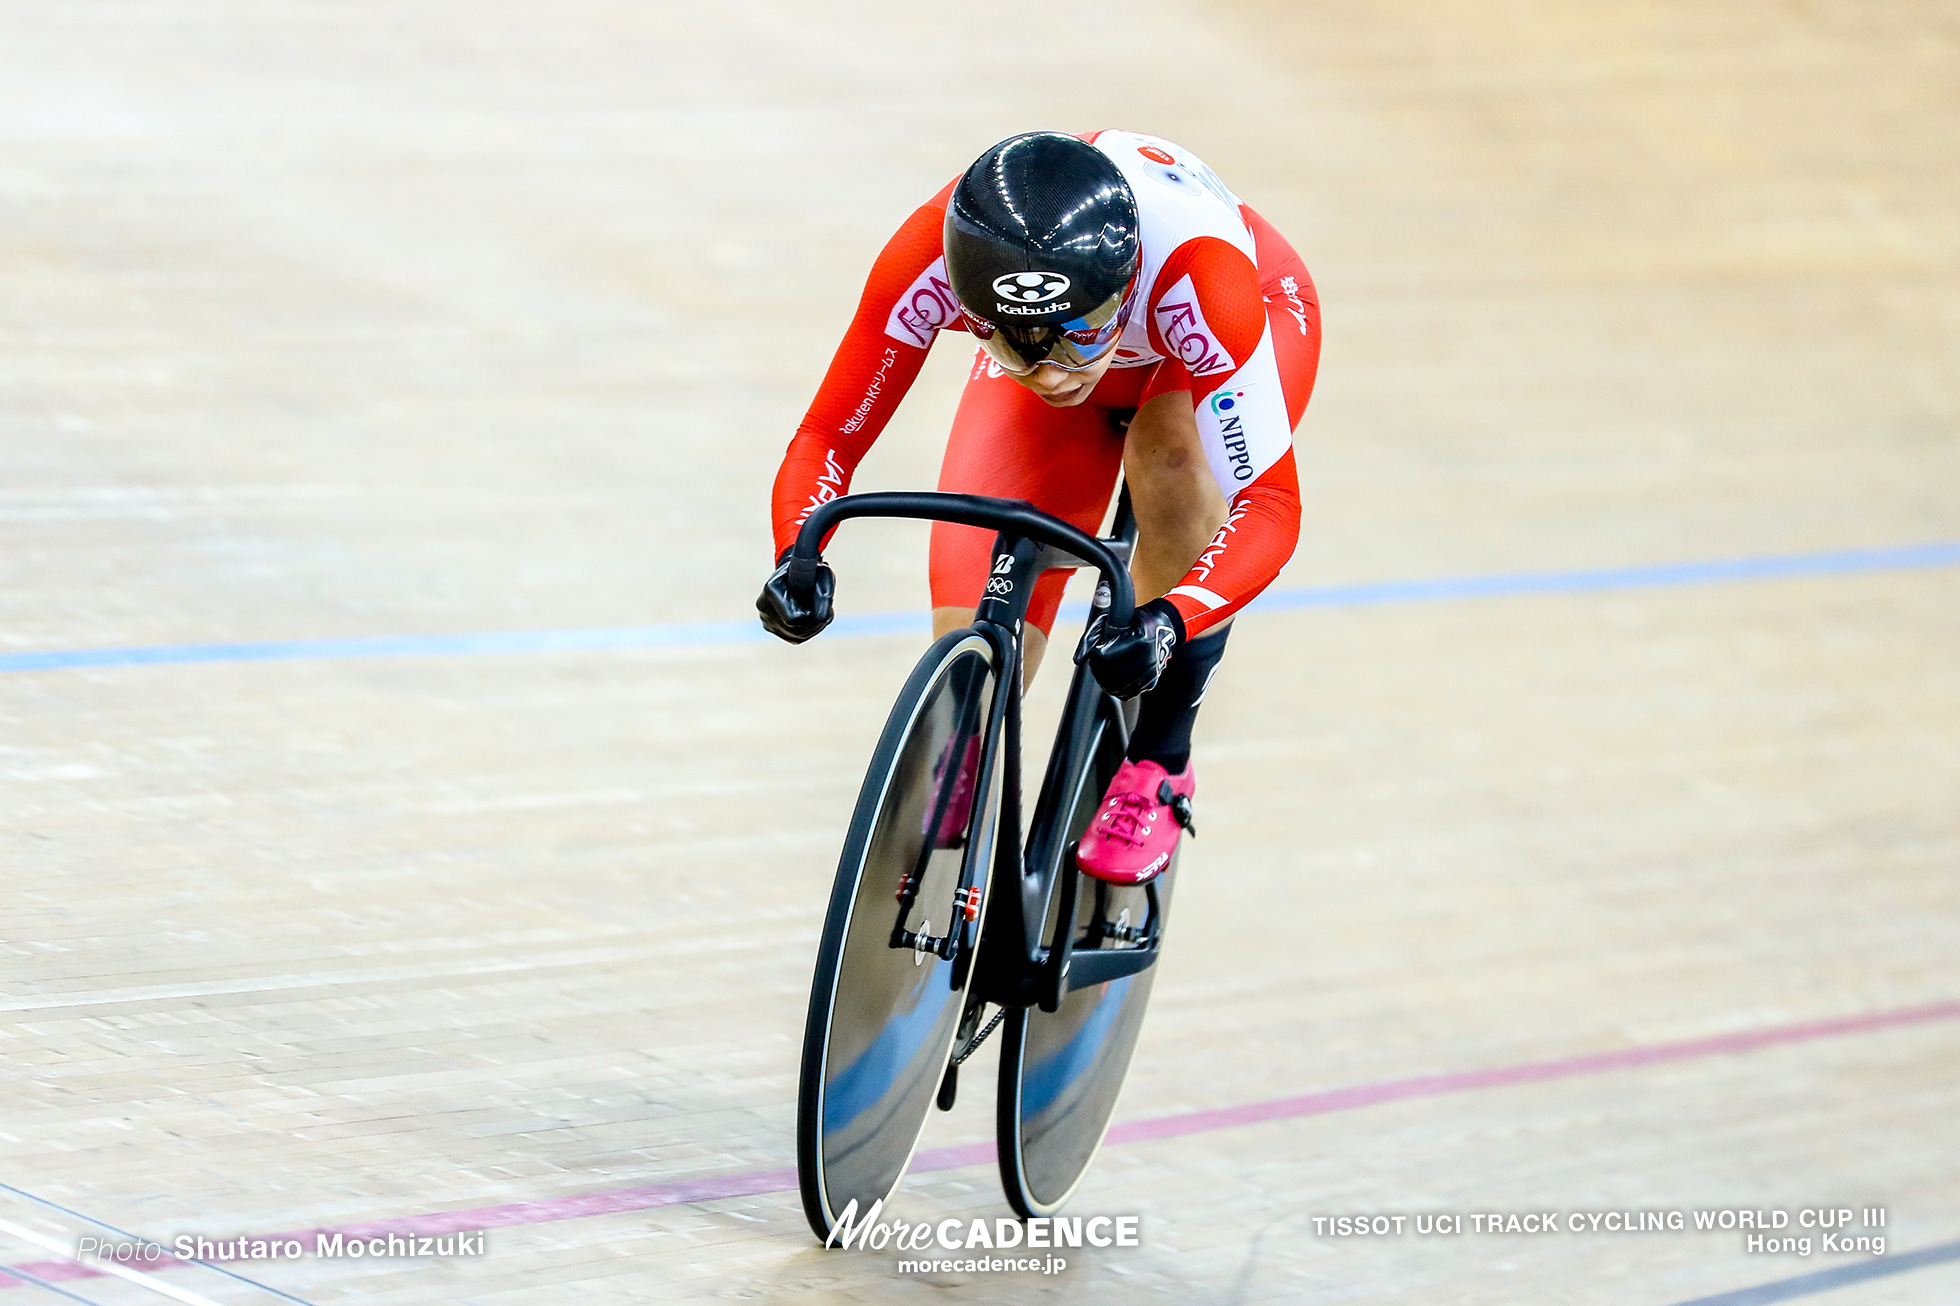 Qualifying / Women's Sprint / TISSOT UCI TRACK CYCLING WORLD CUP III, Hong Kong